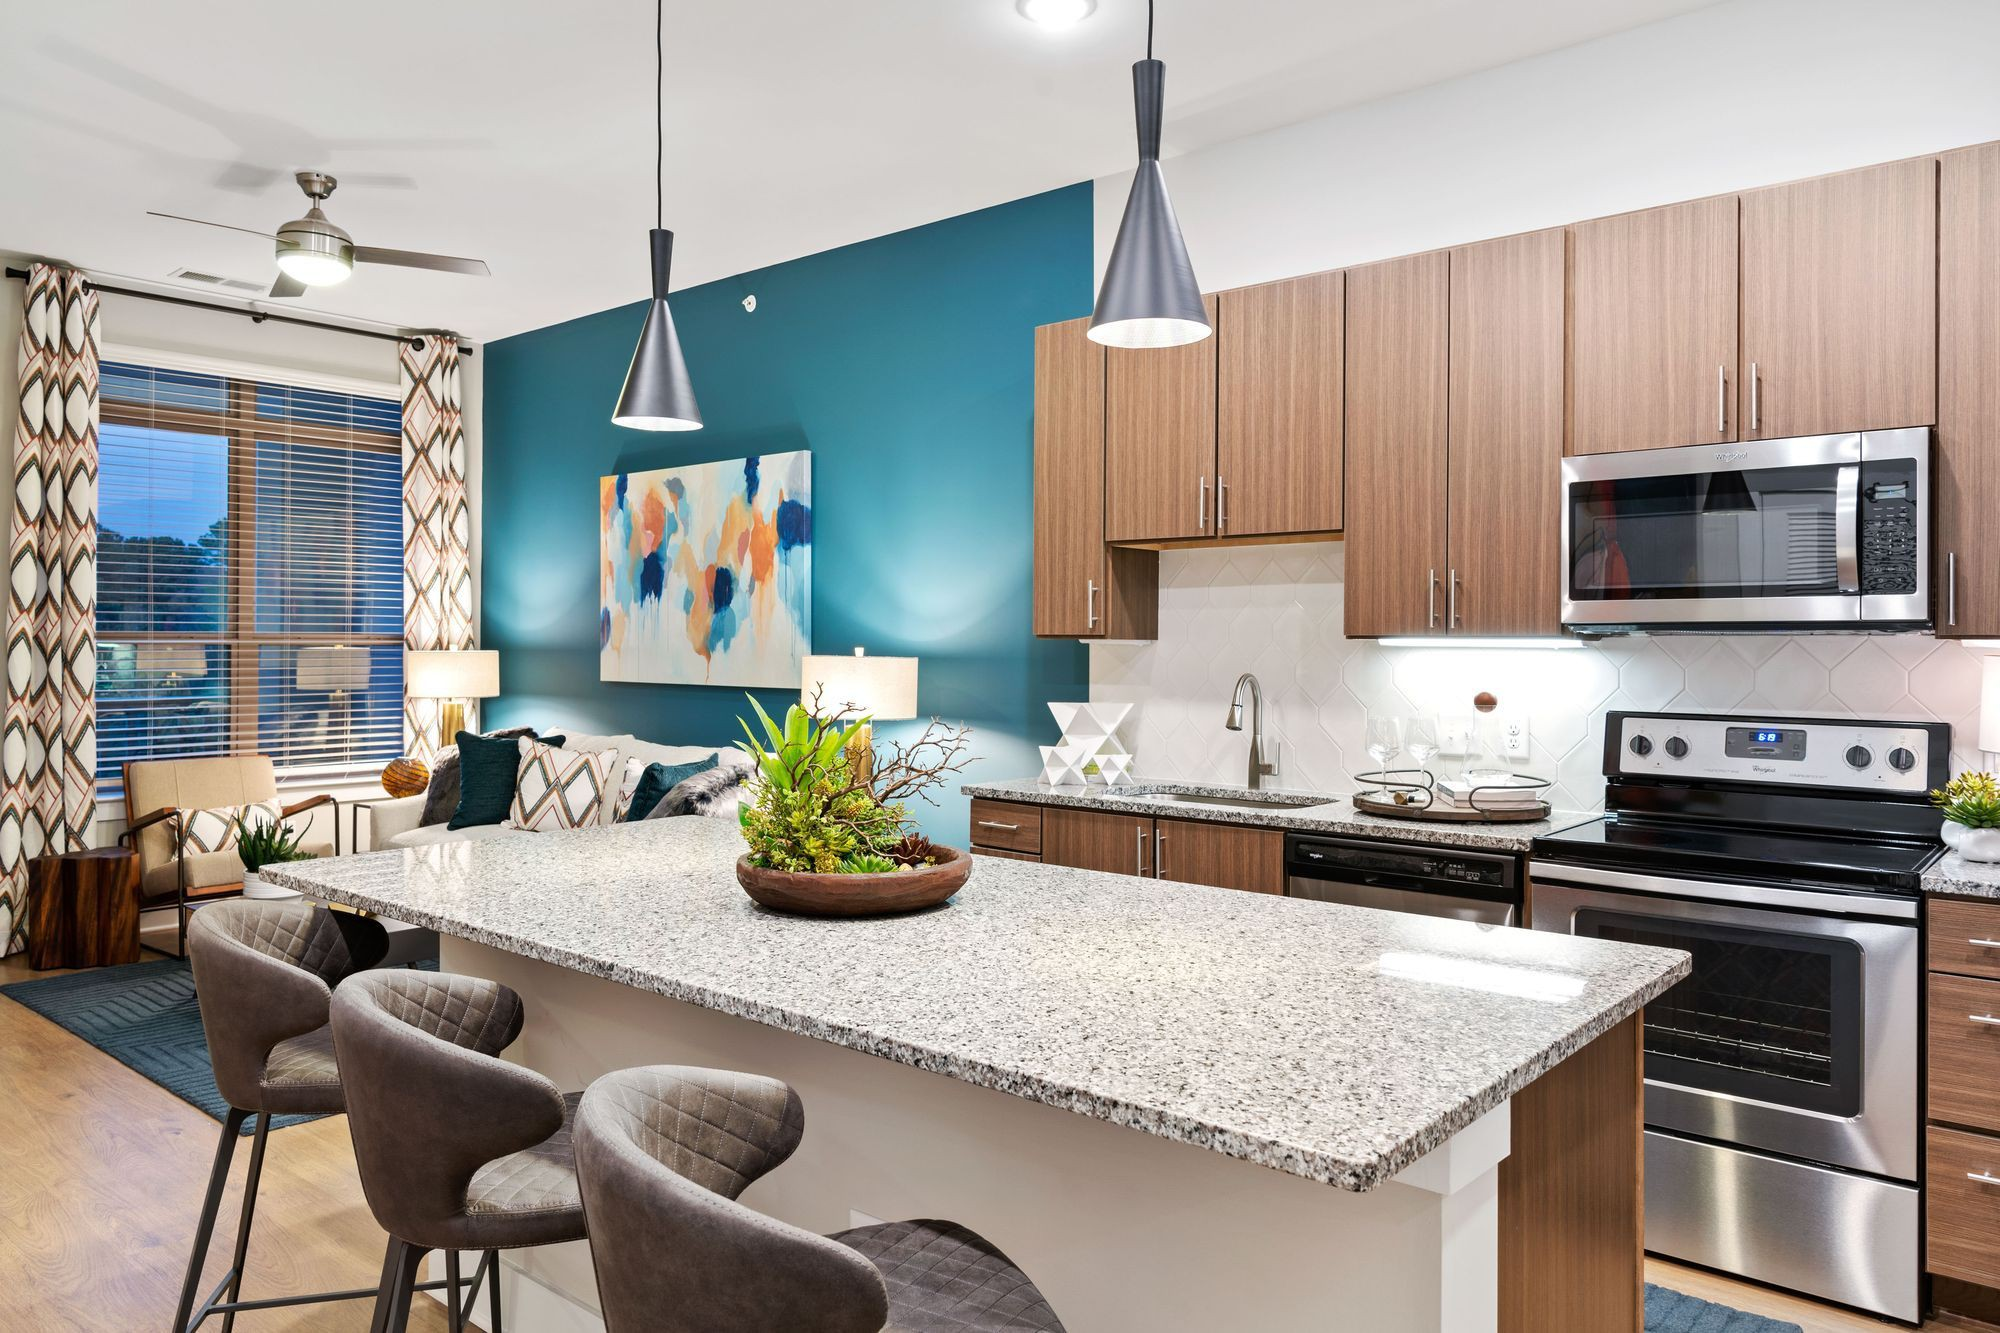 Apartments Near Wake Tech Cortland Cary for Wake Technical Community College Students in Raleigh, NC